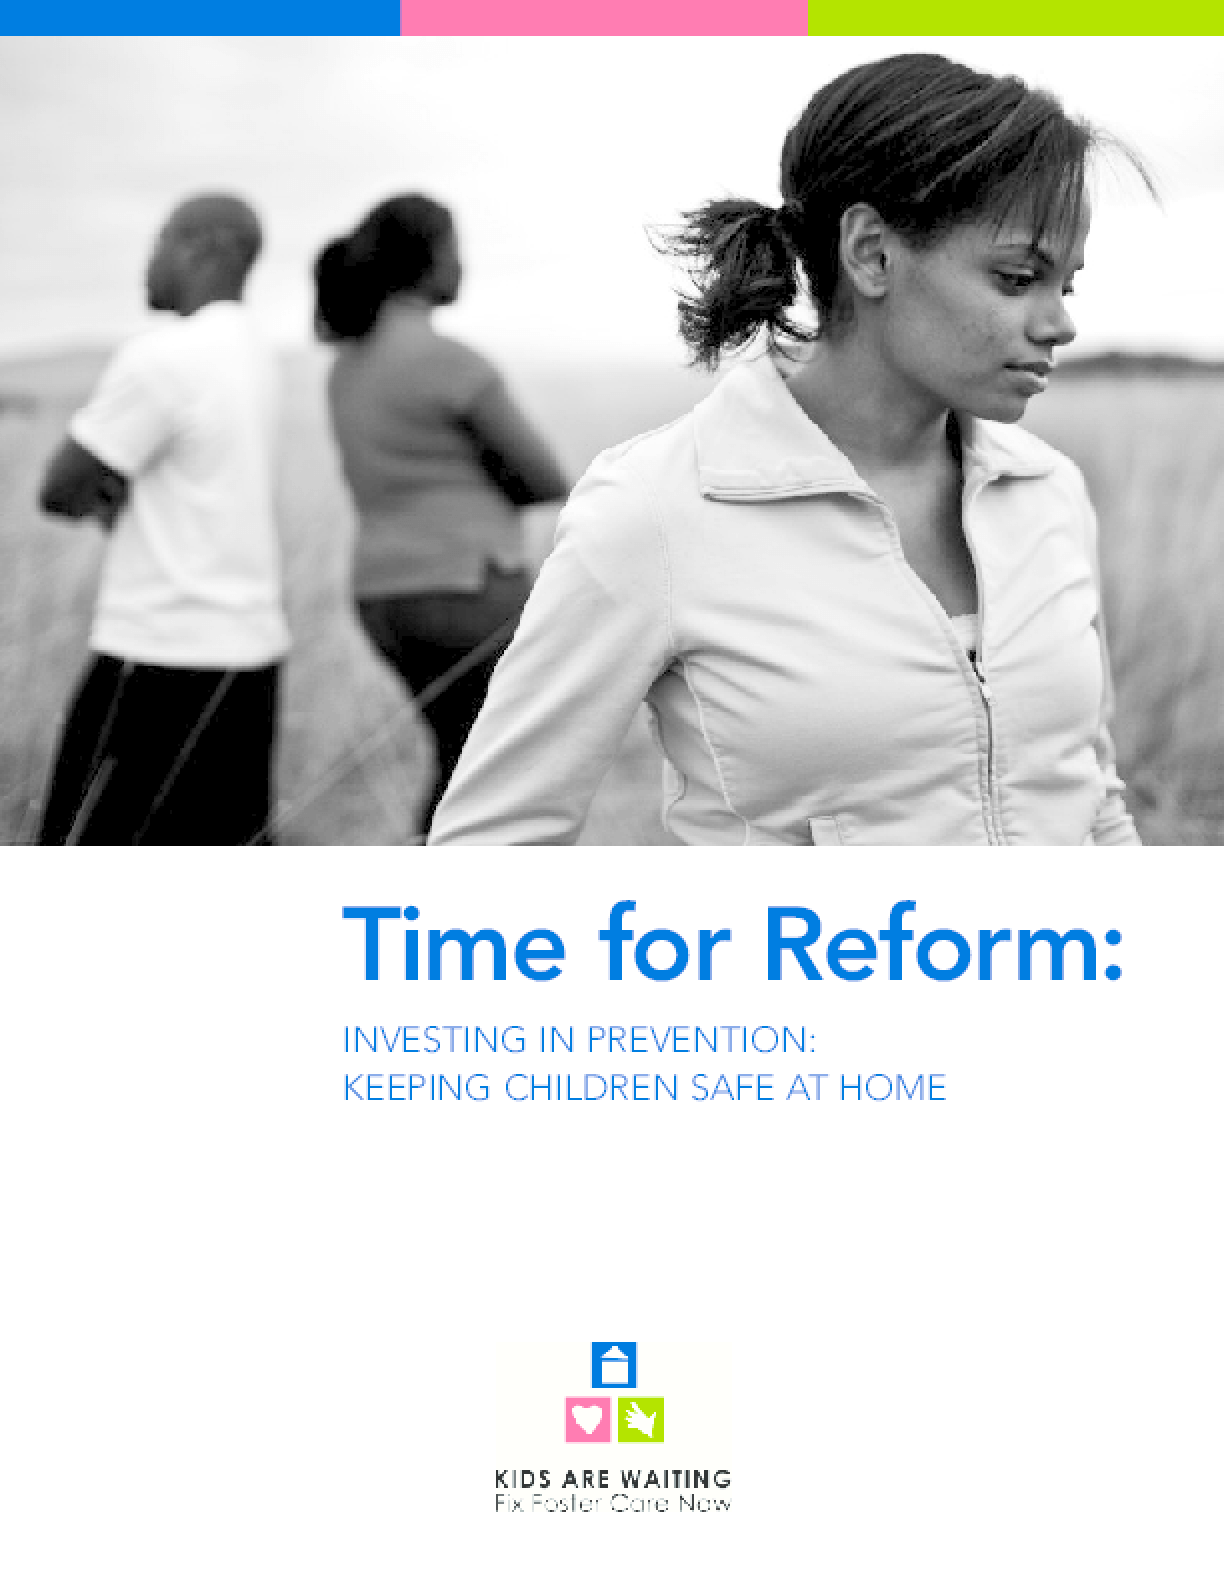 Time for Reform: Investing in Prevention: Keeping Children Safe at Home